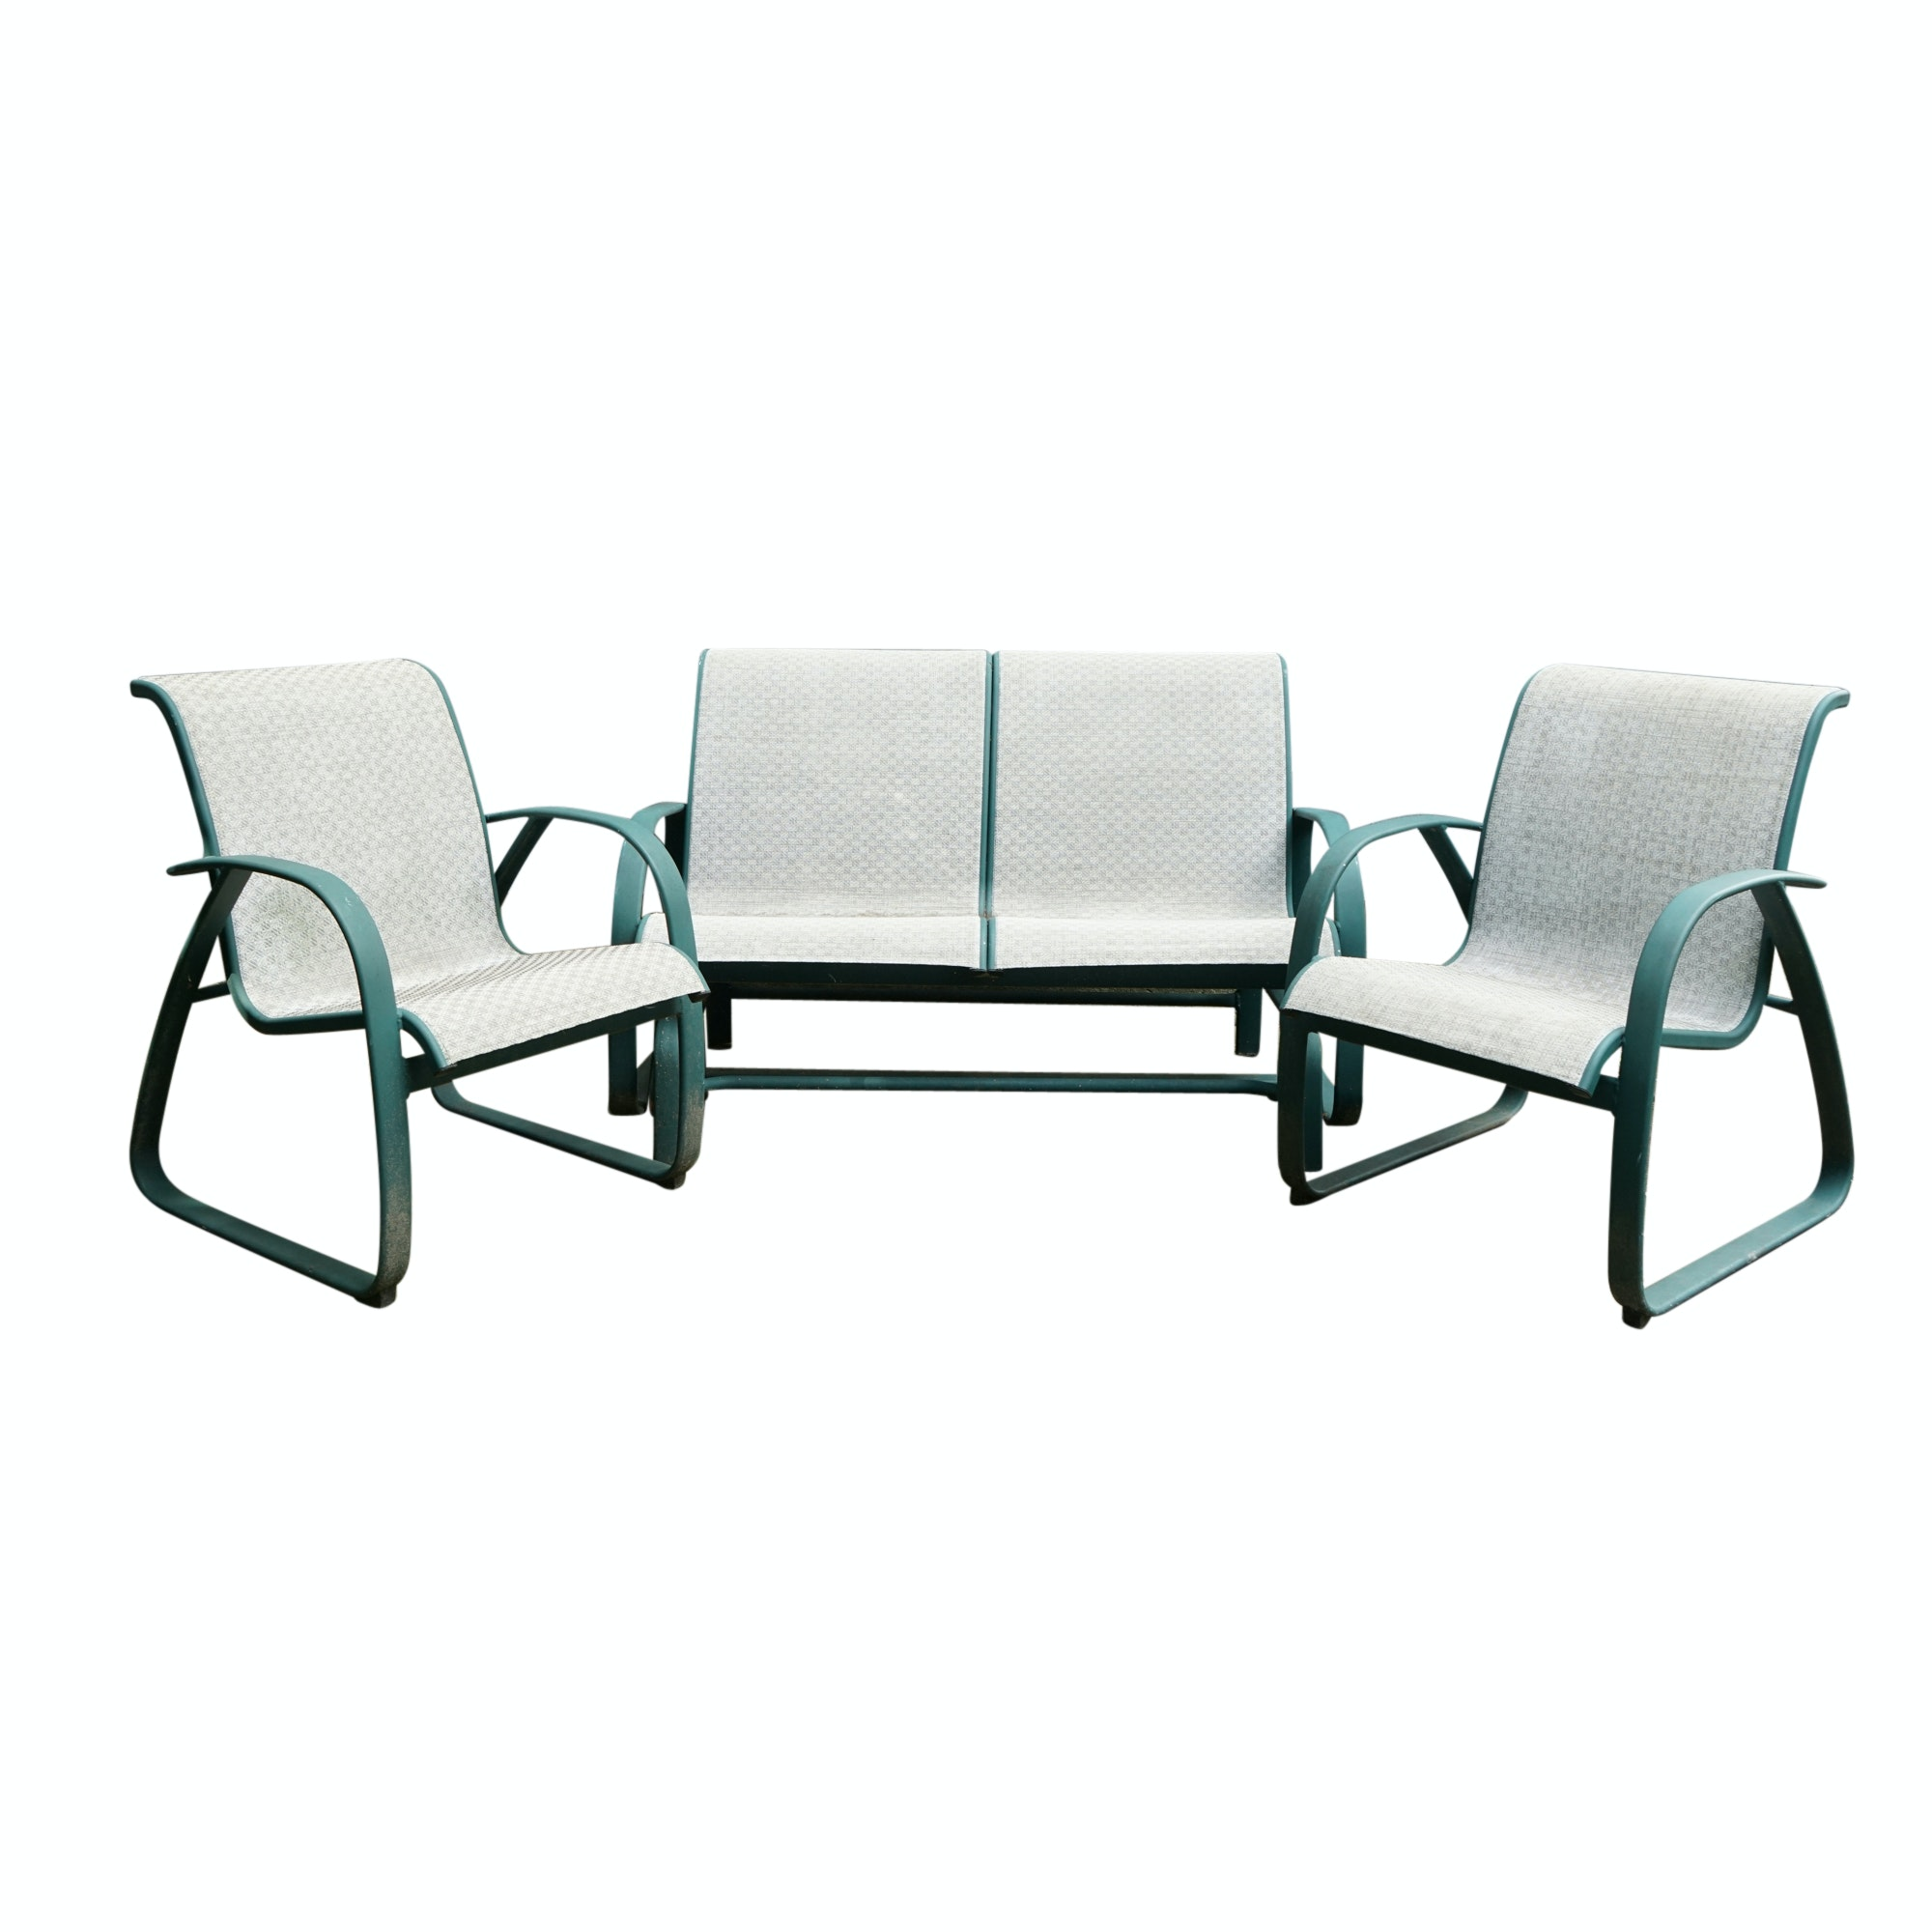 Patio Chairs and Swinging Loveseat